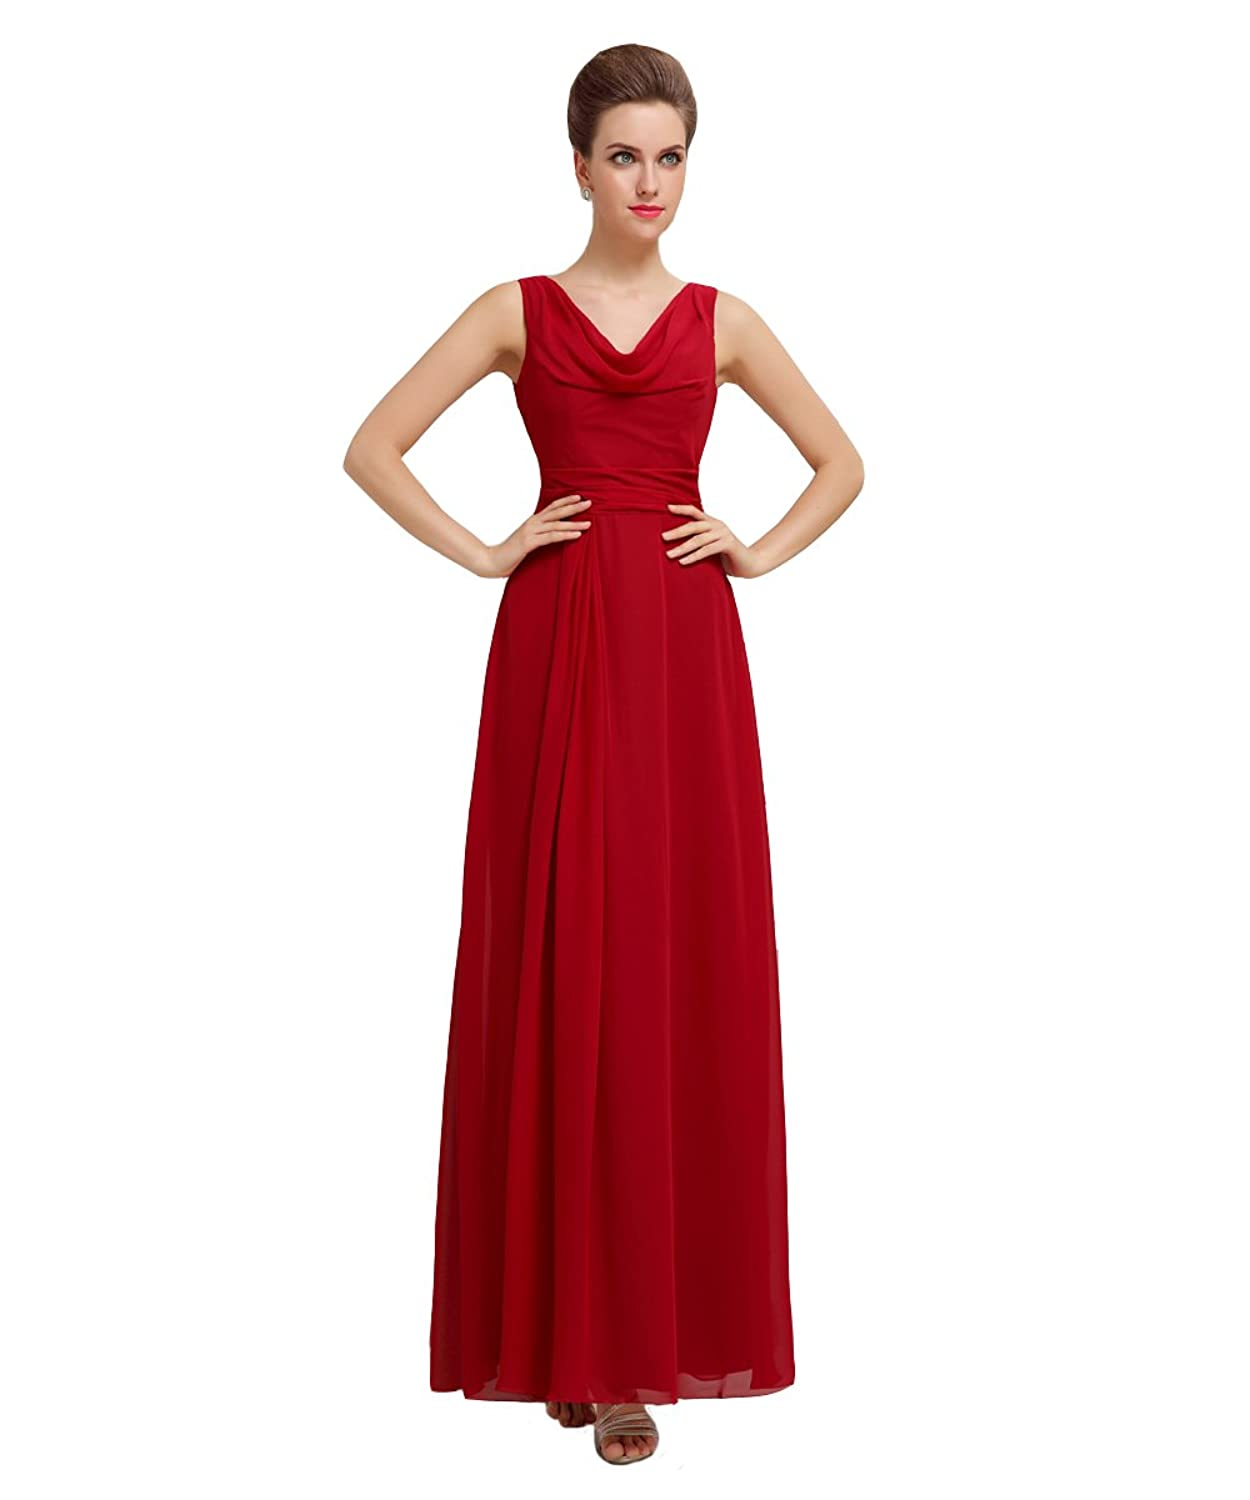 YesDress Women Unique A-line Pleating Off Shoulder Chiffon Long Red Bridesmaid Dresses